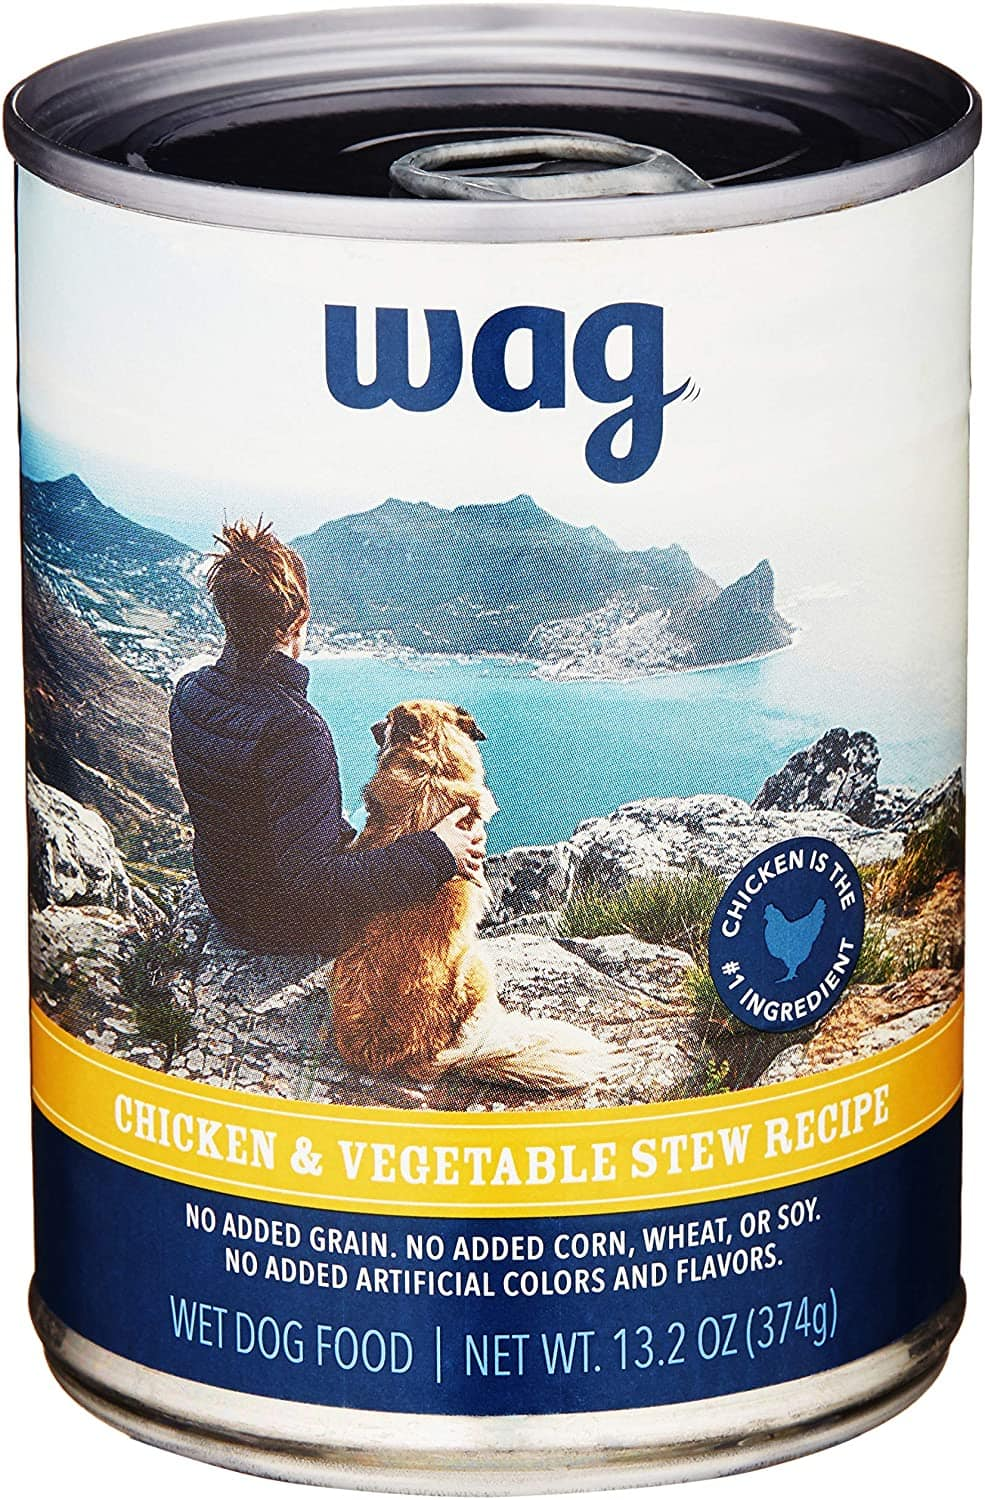 Amazon Brand - Wag Wet Canned Dog Food Chicken & Vegetable (Stew), 12 Pack $12